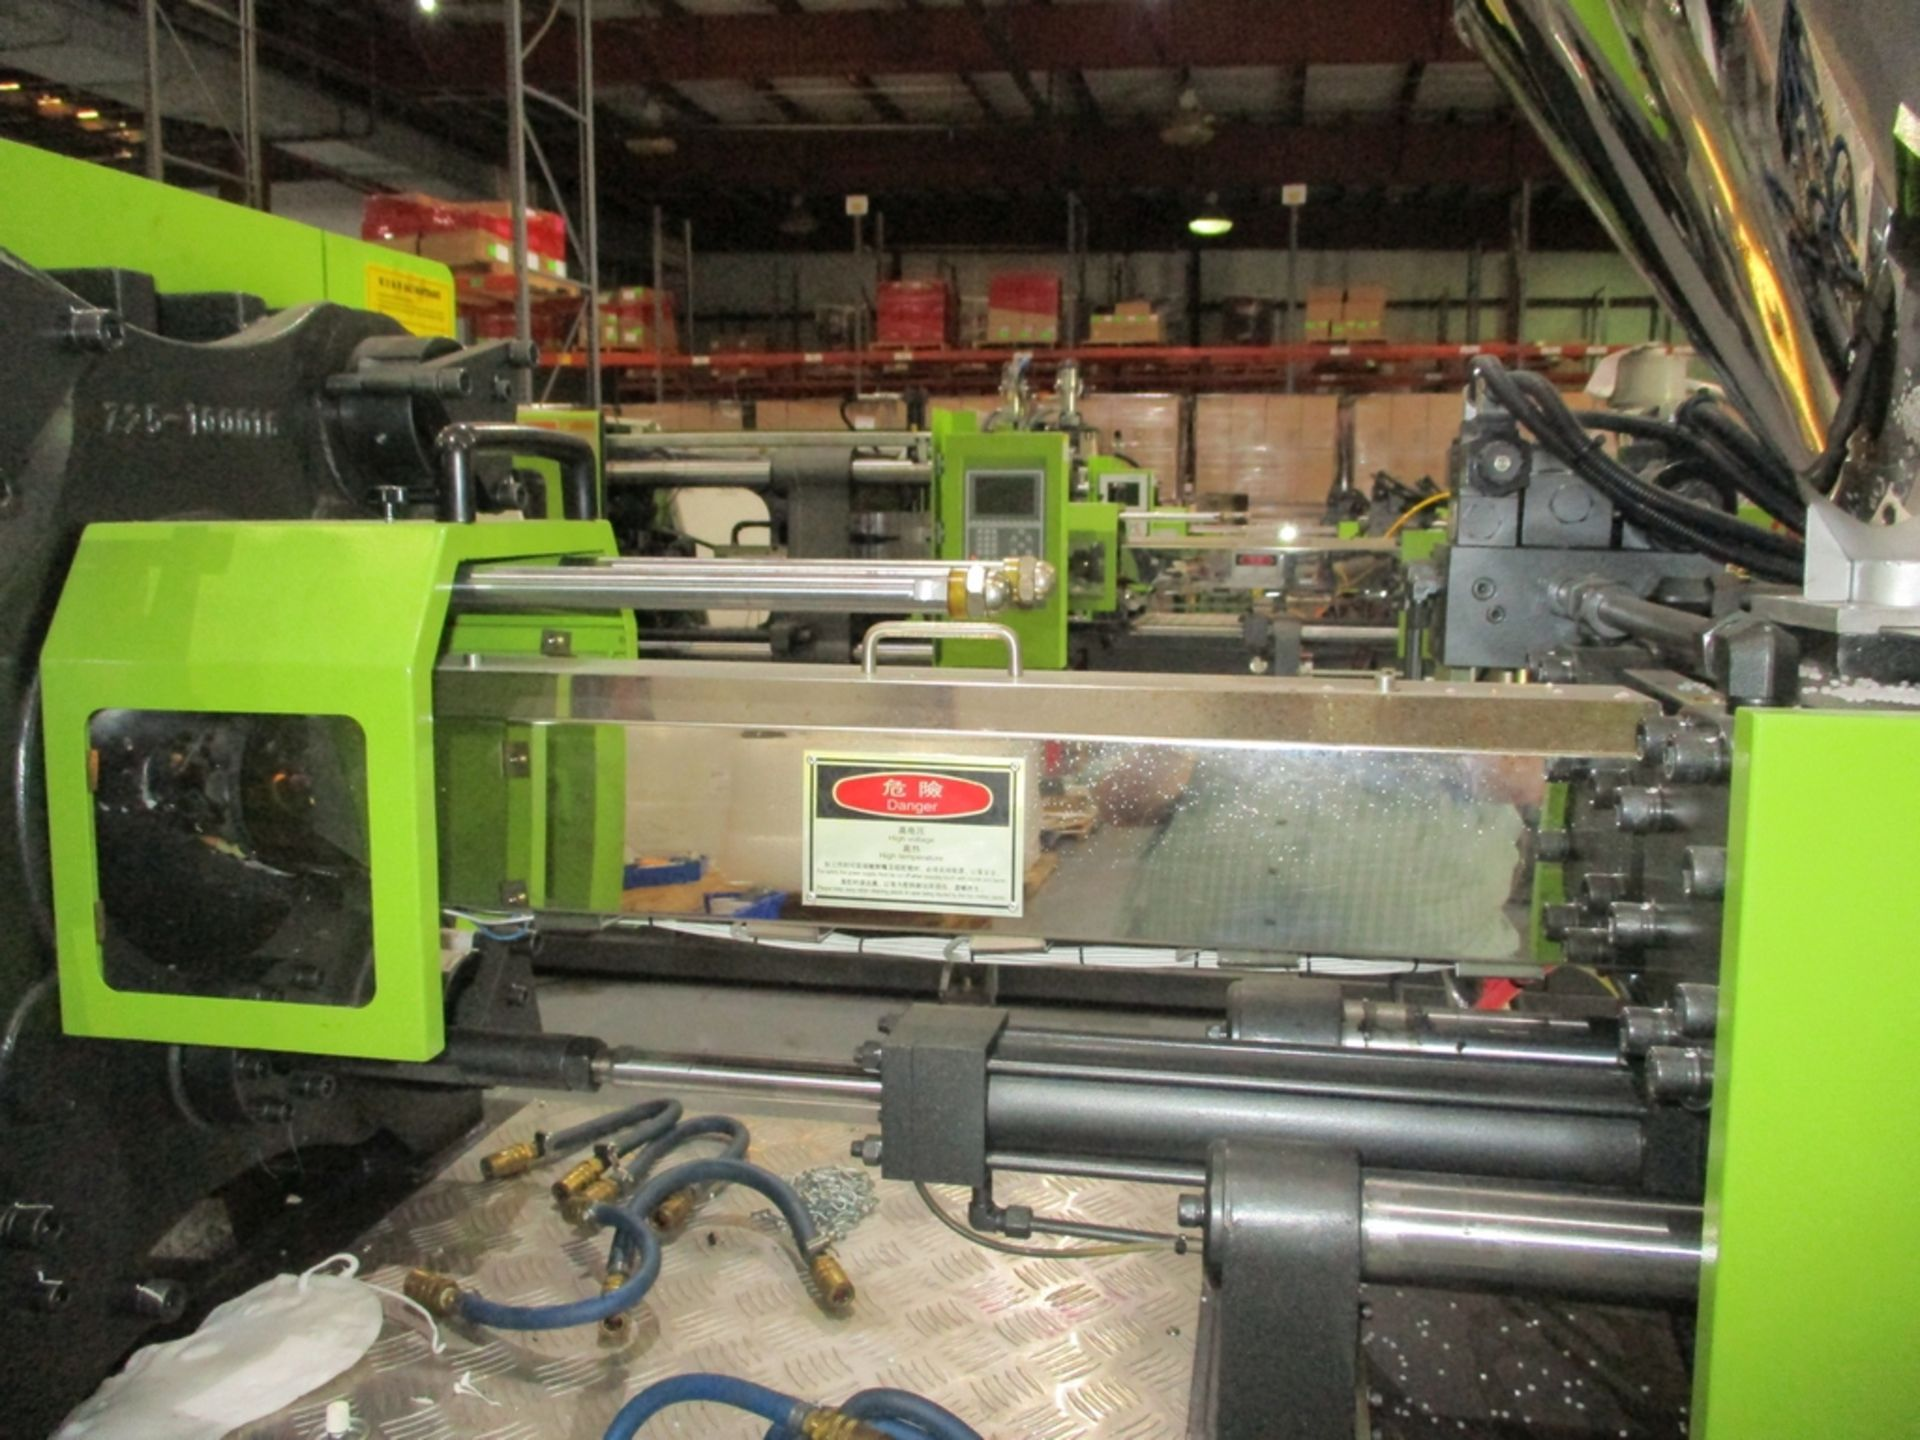 Lot 1006 - Powerjet BJ160-V6 160-Ton Injection Molding Machine - Variable Pump; Clamping Force: 160 Ton;